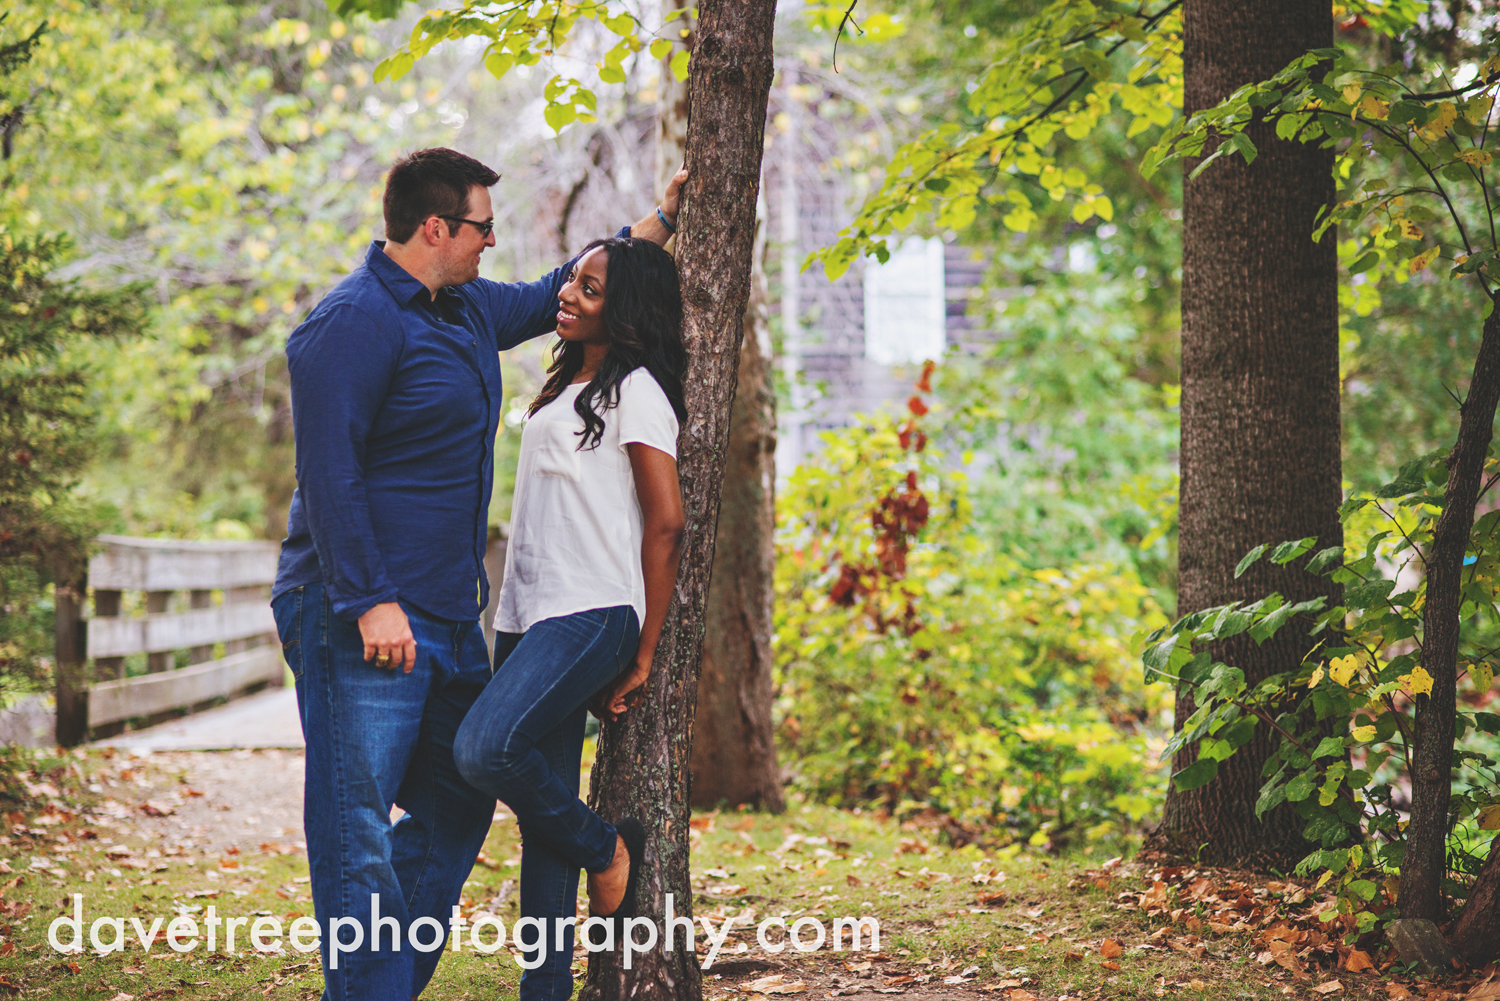 kalamazoo_wedding_photographer_kalamazoo_engagement_photographer_26.jpg